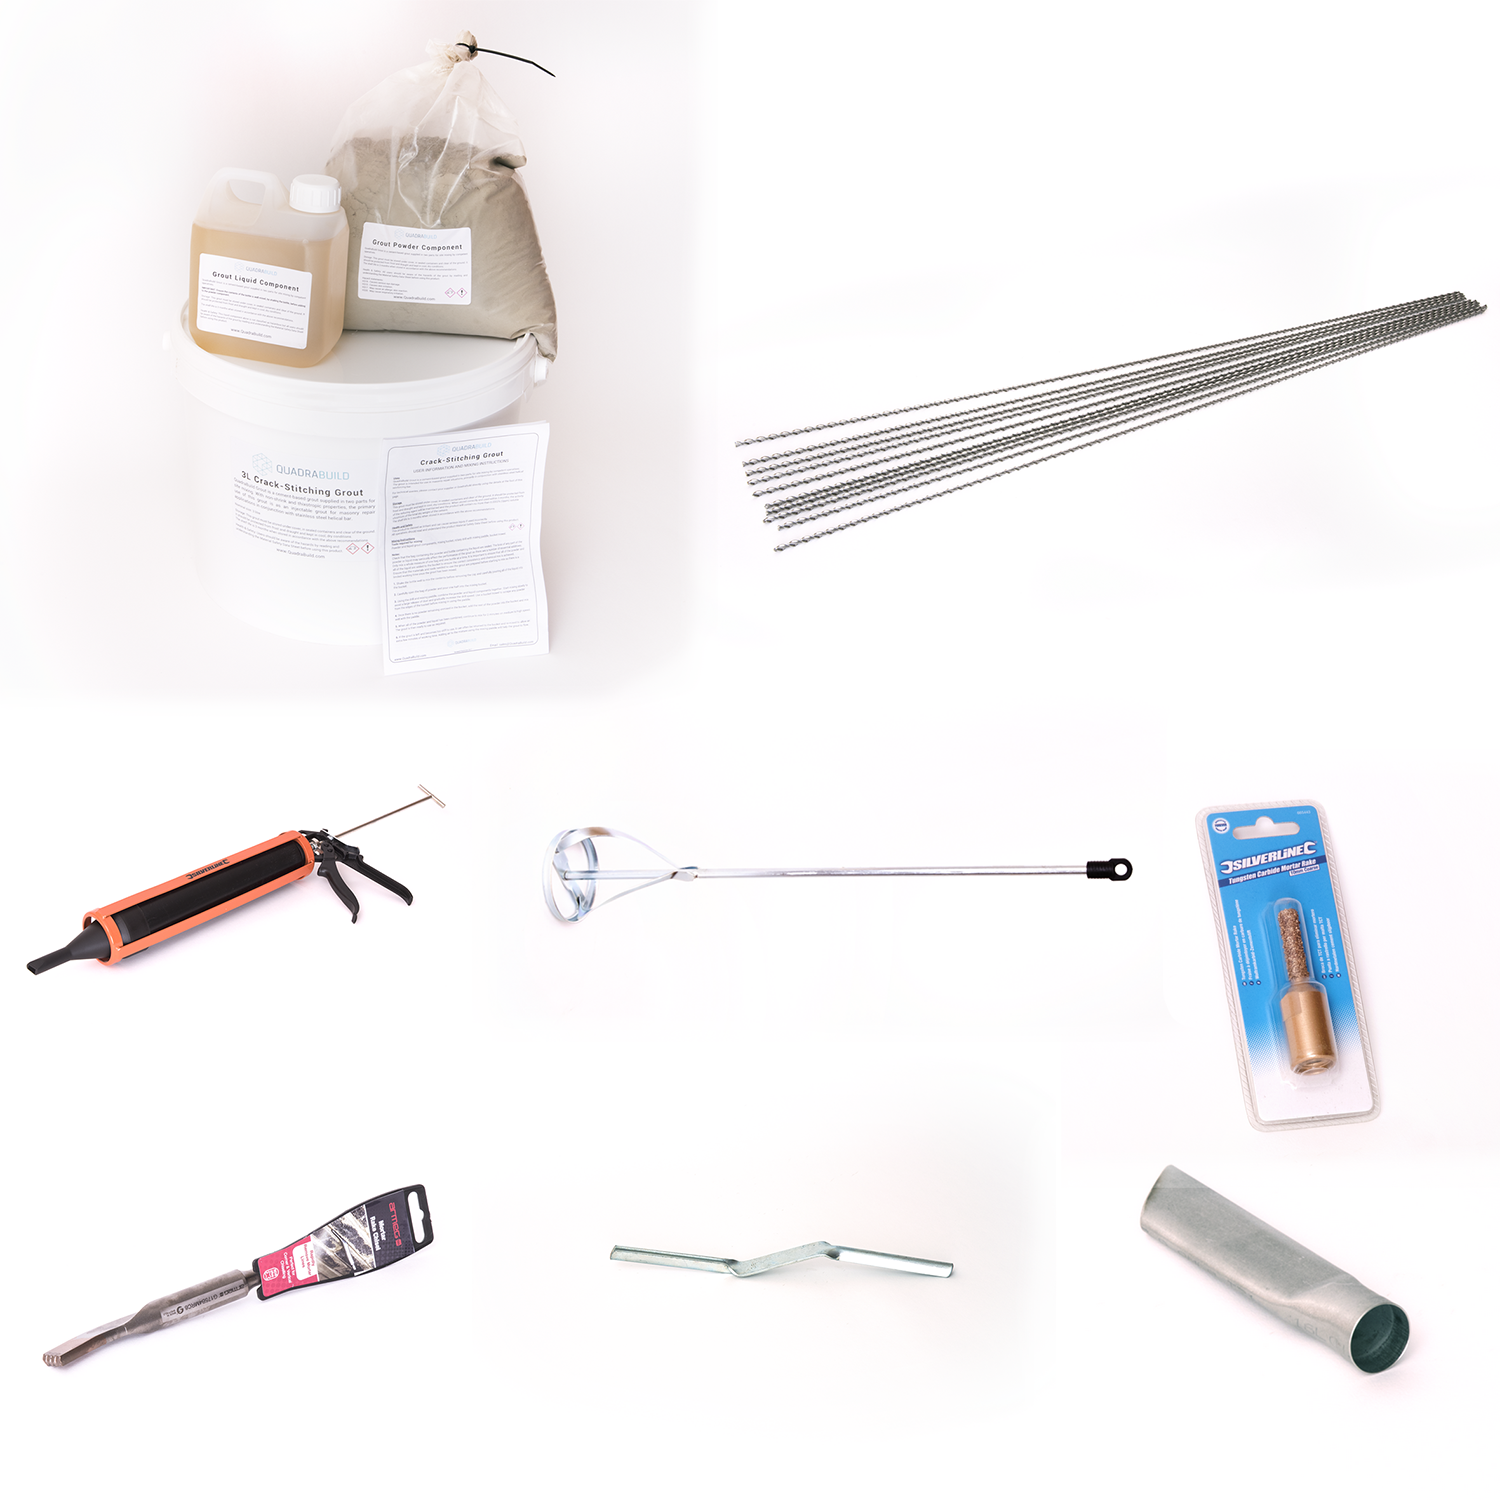 crack stitching kit with tools